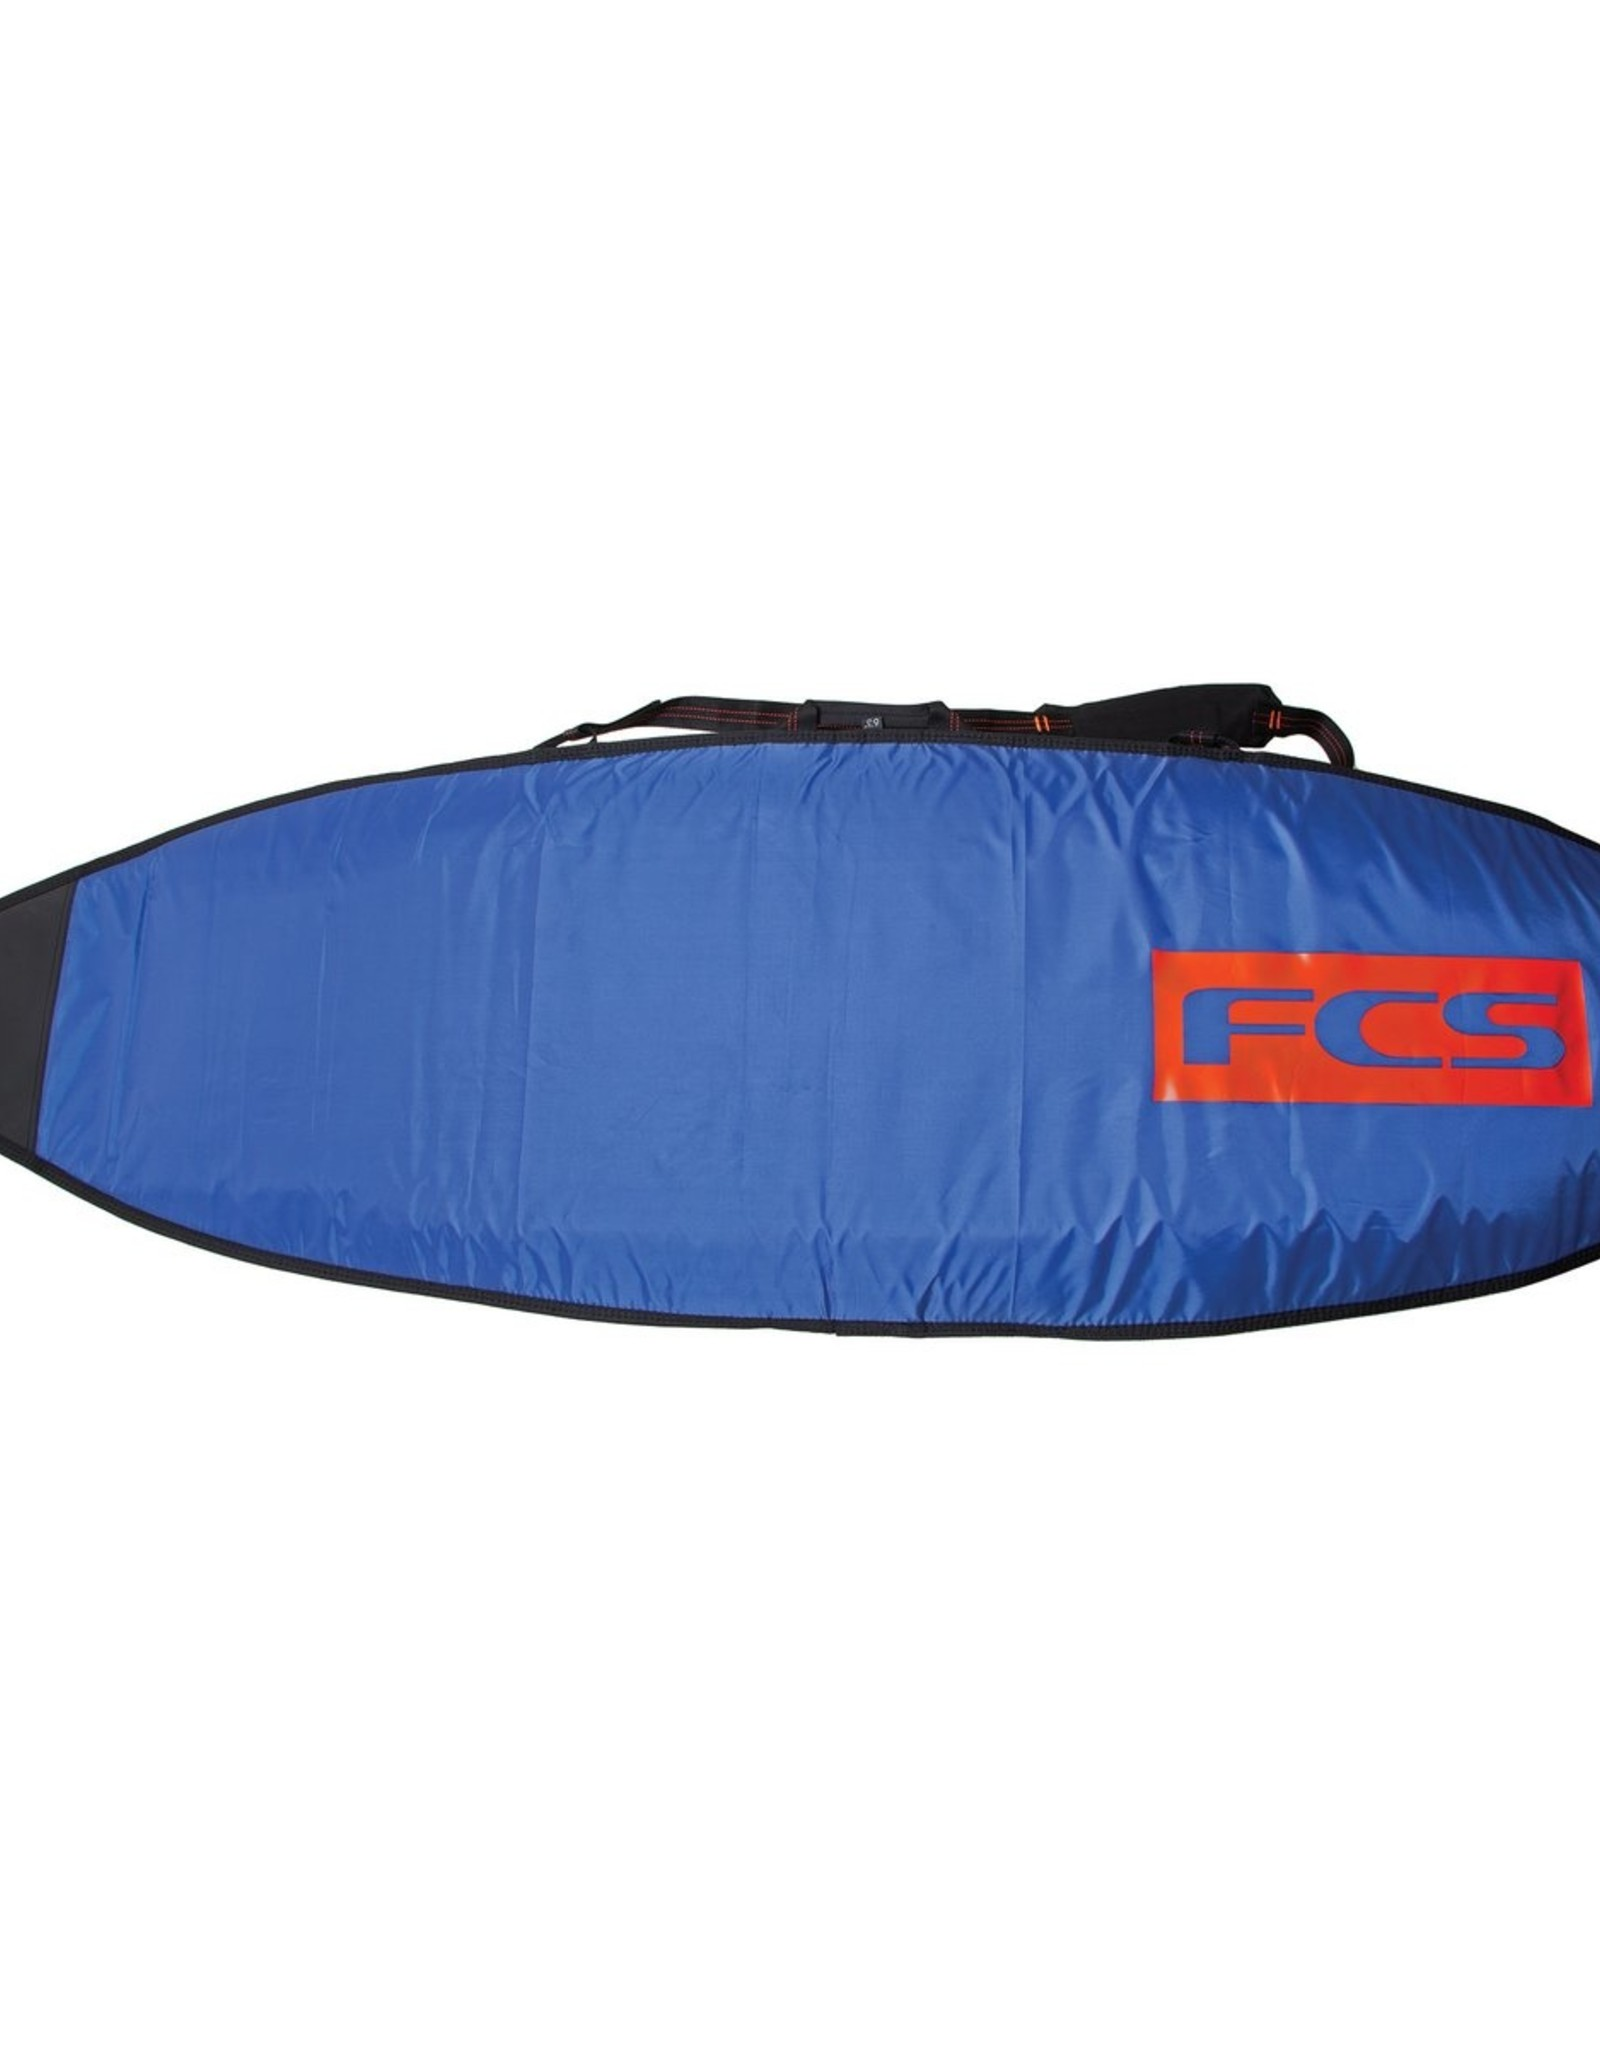 FCS FCS Classic Funboard Bags  6 foot 7 inch Steel-Blue White